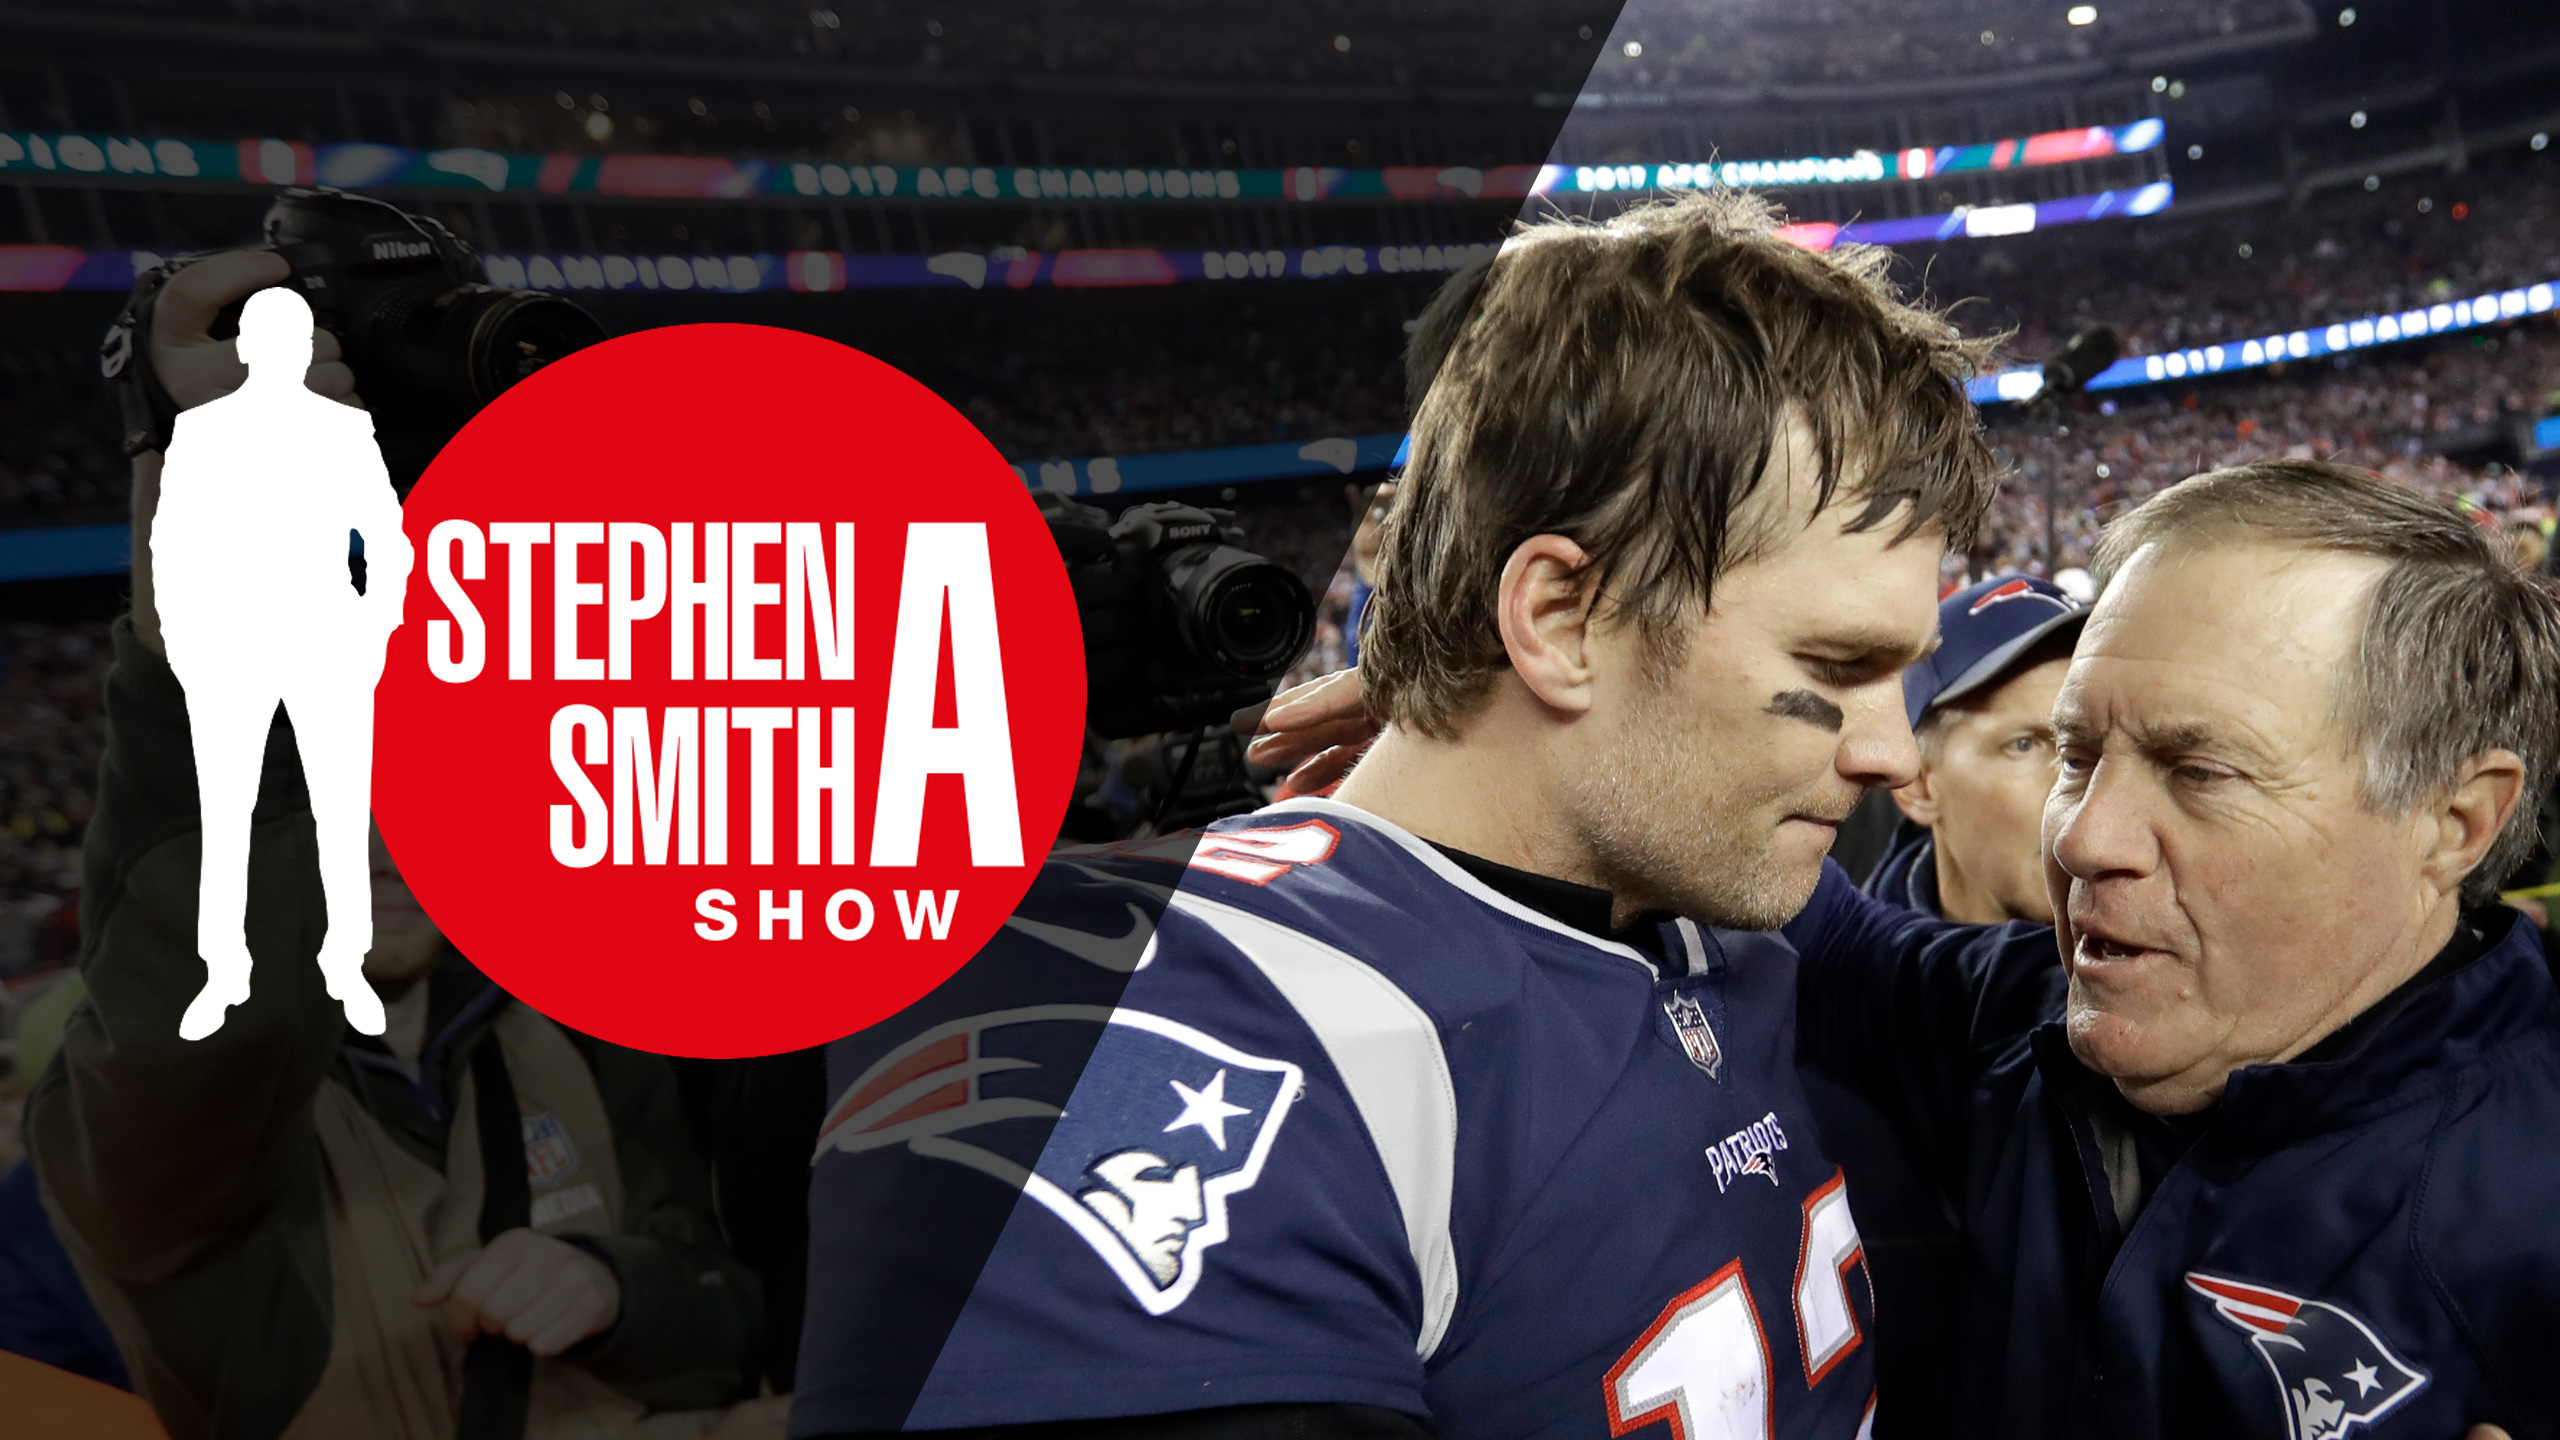 Wed, 9/19 - The Stephen A. Smith Show